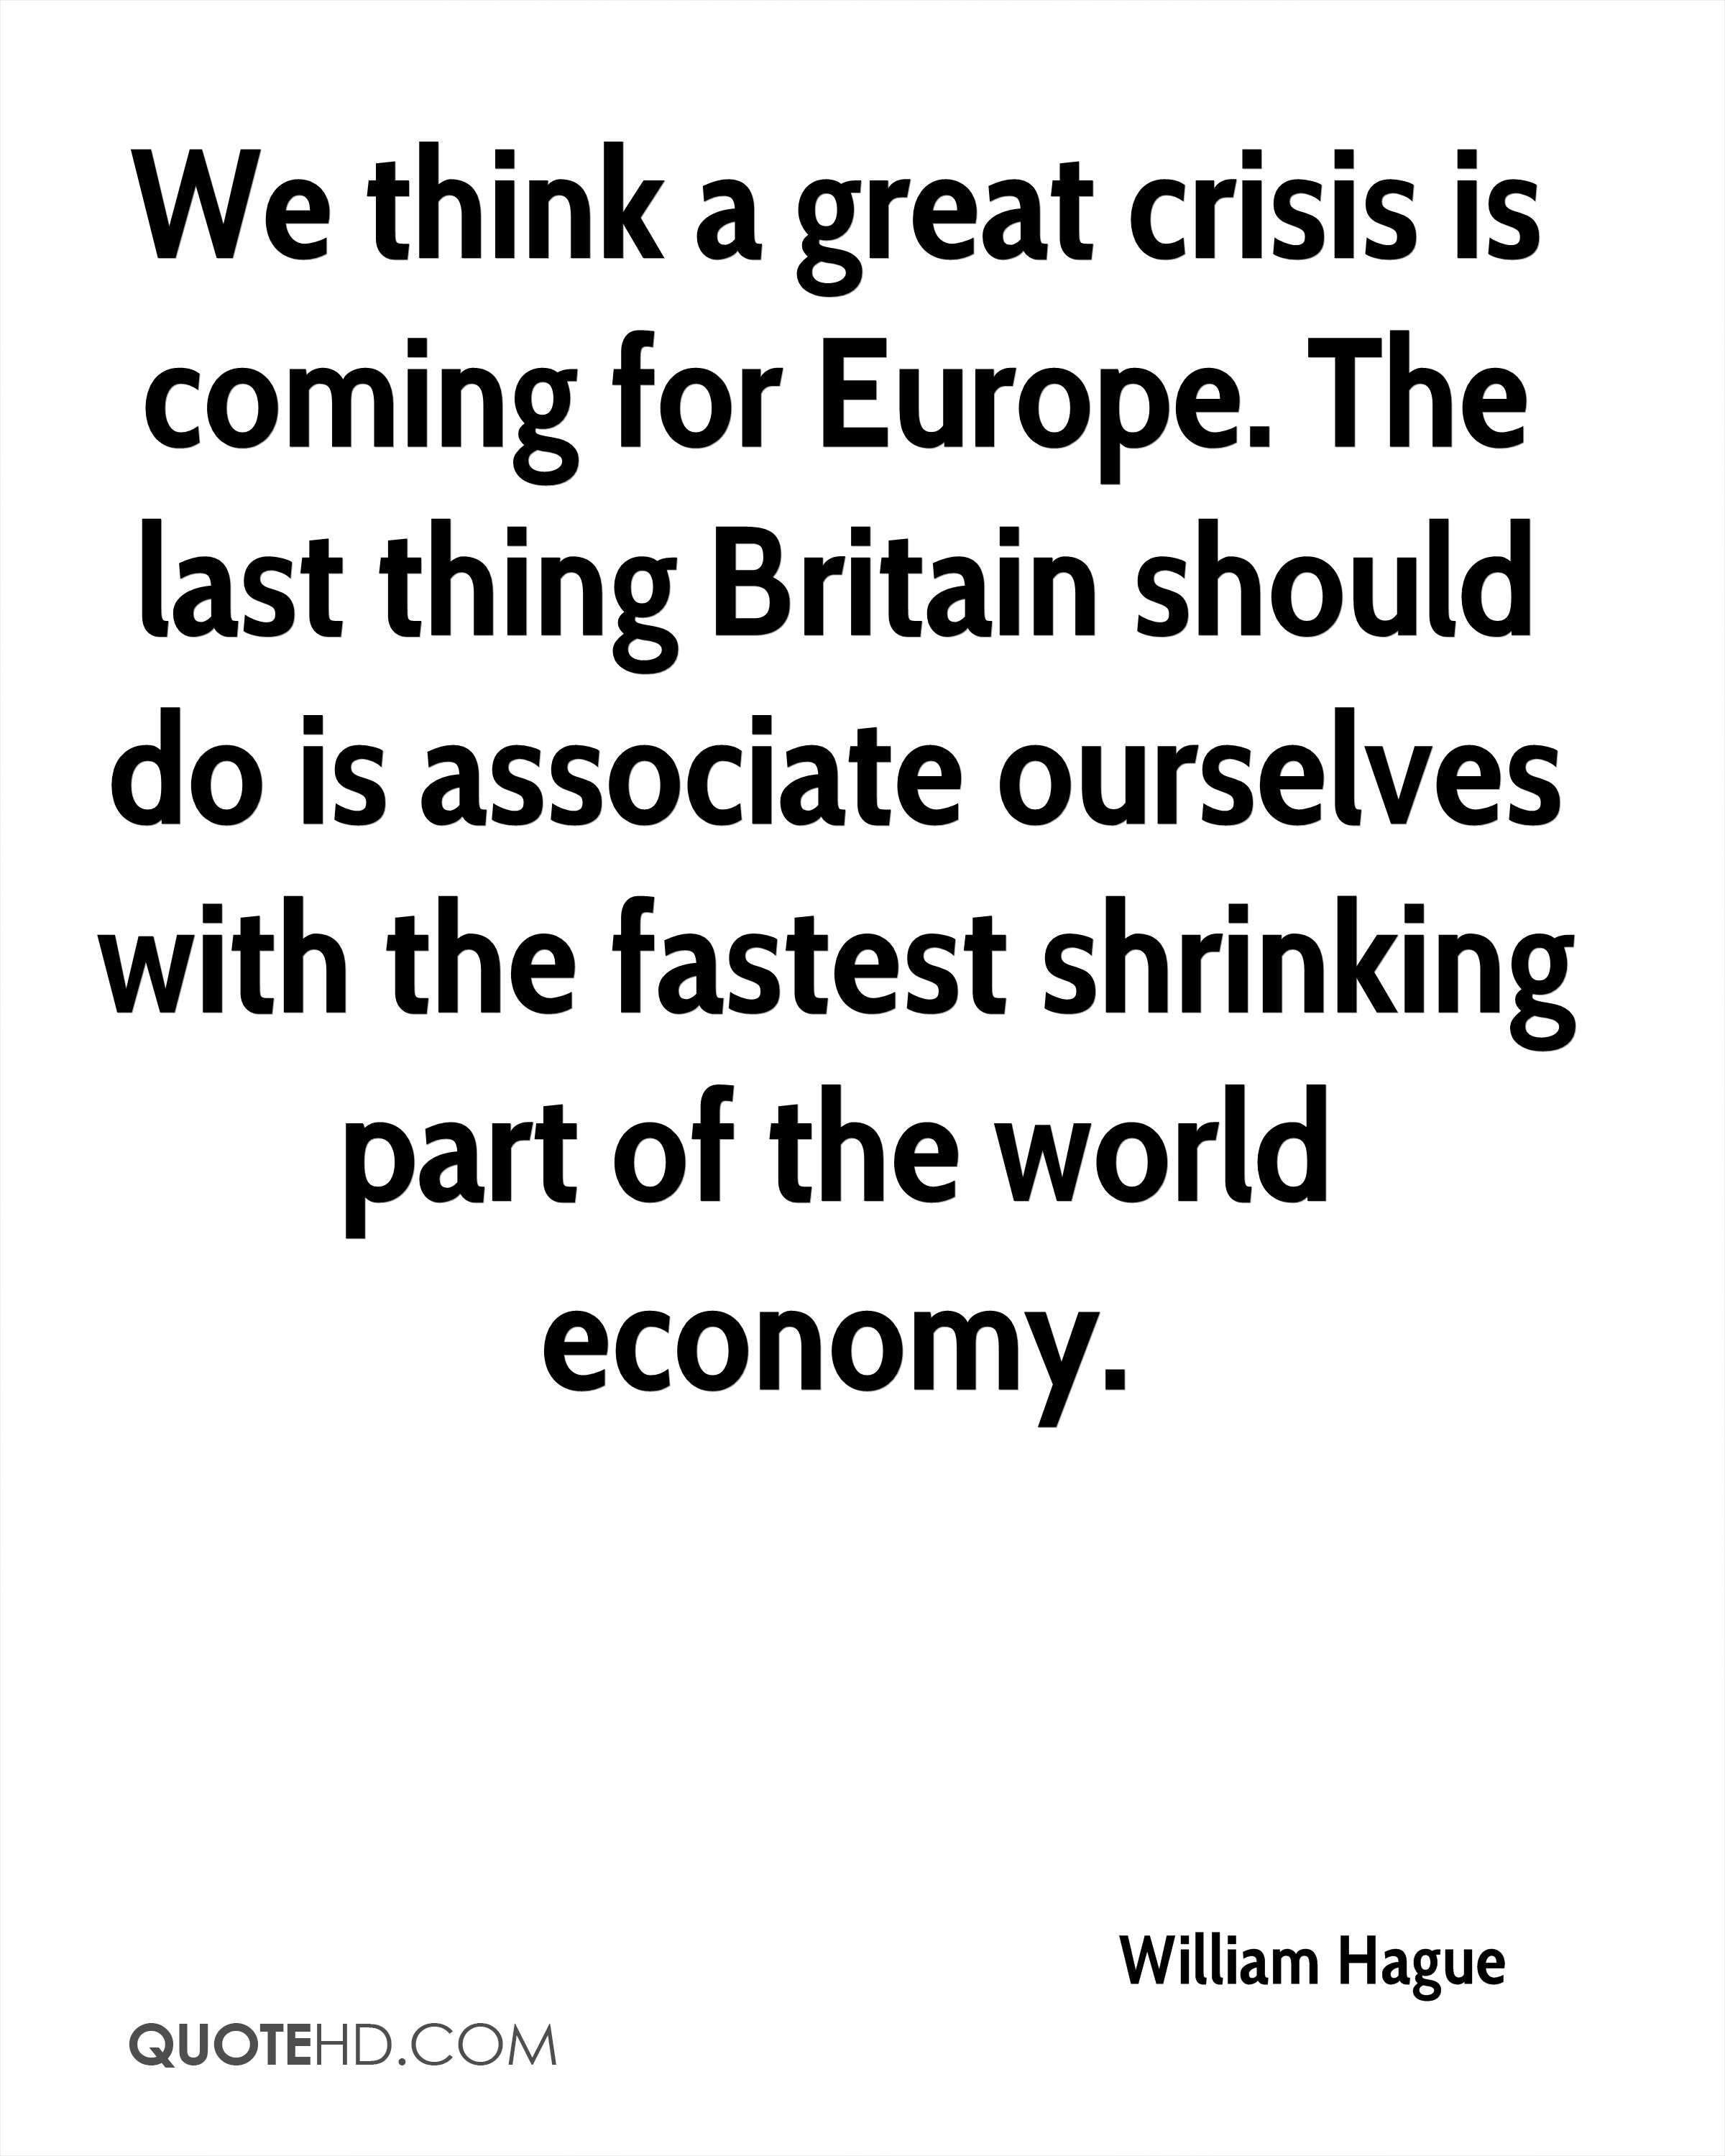 We think a great crisis is coming for Europe. The last thing Britain should do is associate ourselves with the fastest shrinking part of the world economy.